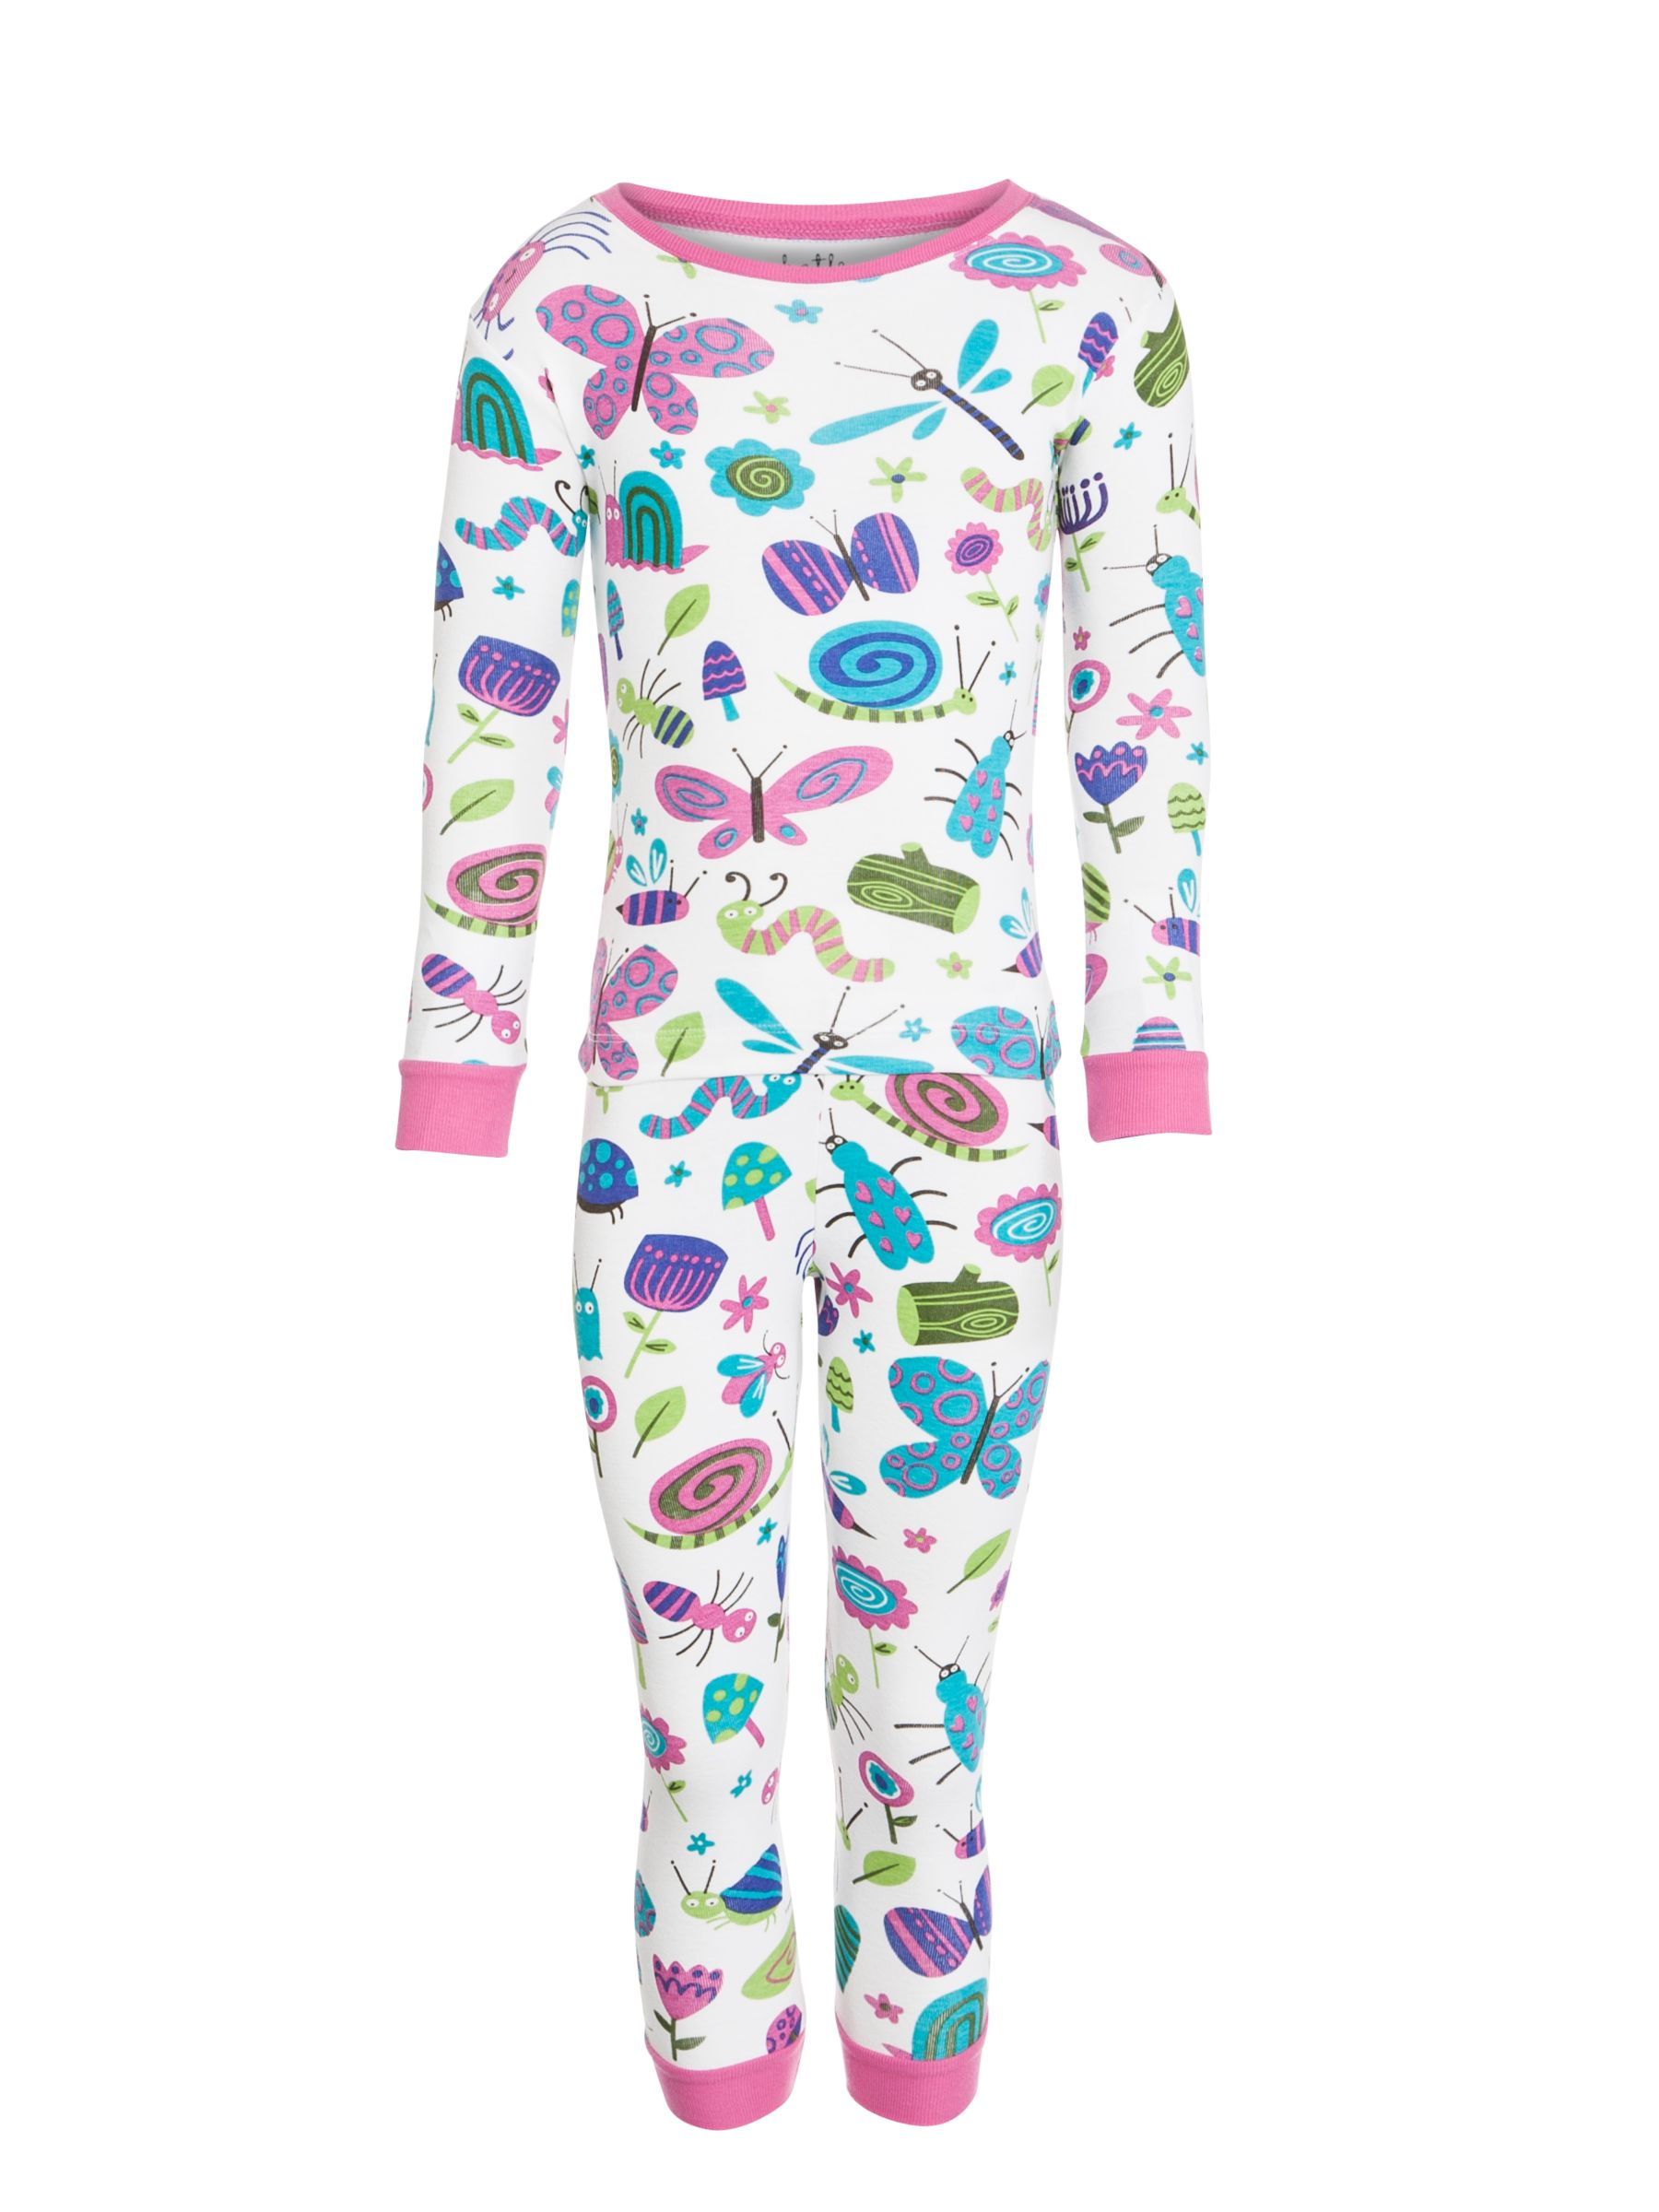 Hatley Bugs Print Girls' Pyjamas, White/Multi